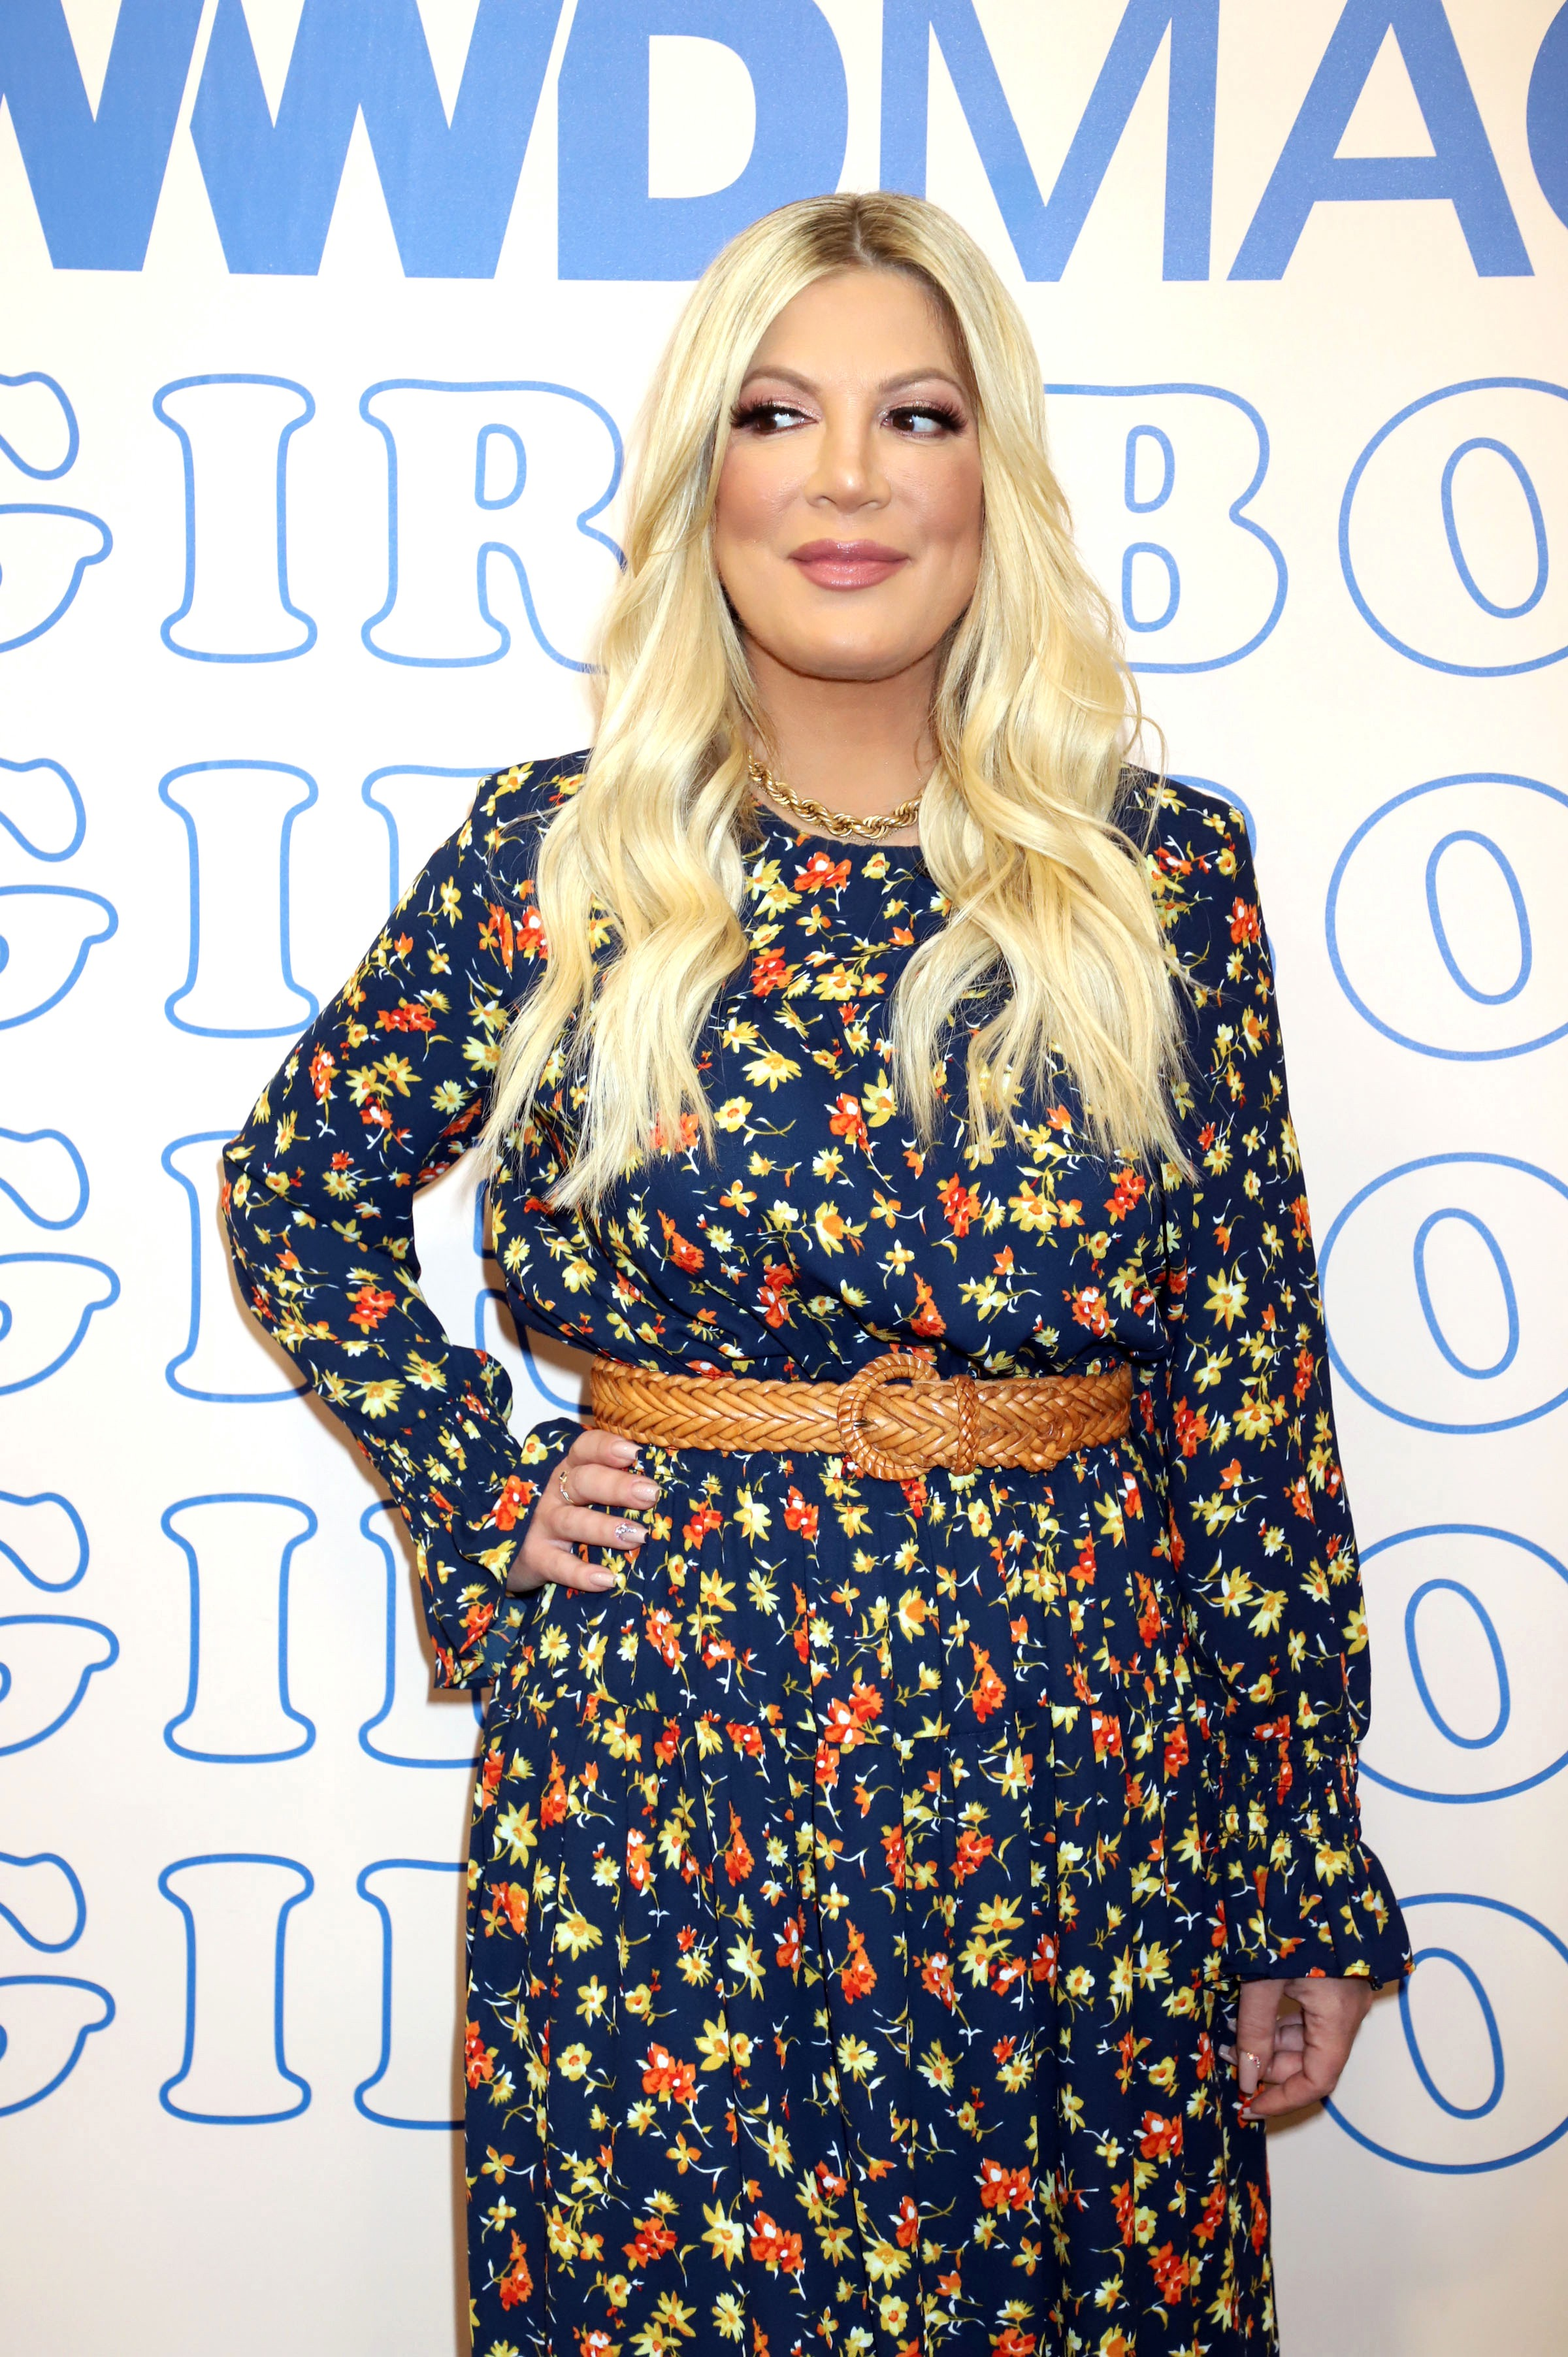 Tori Spelling 90s & 90210 Fashion with TORI SPELLING Hosted By RACHEL MCCORD  WWD Magic Social House...